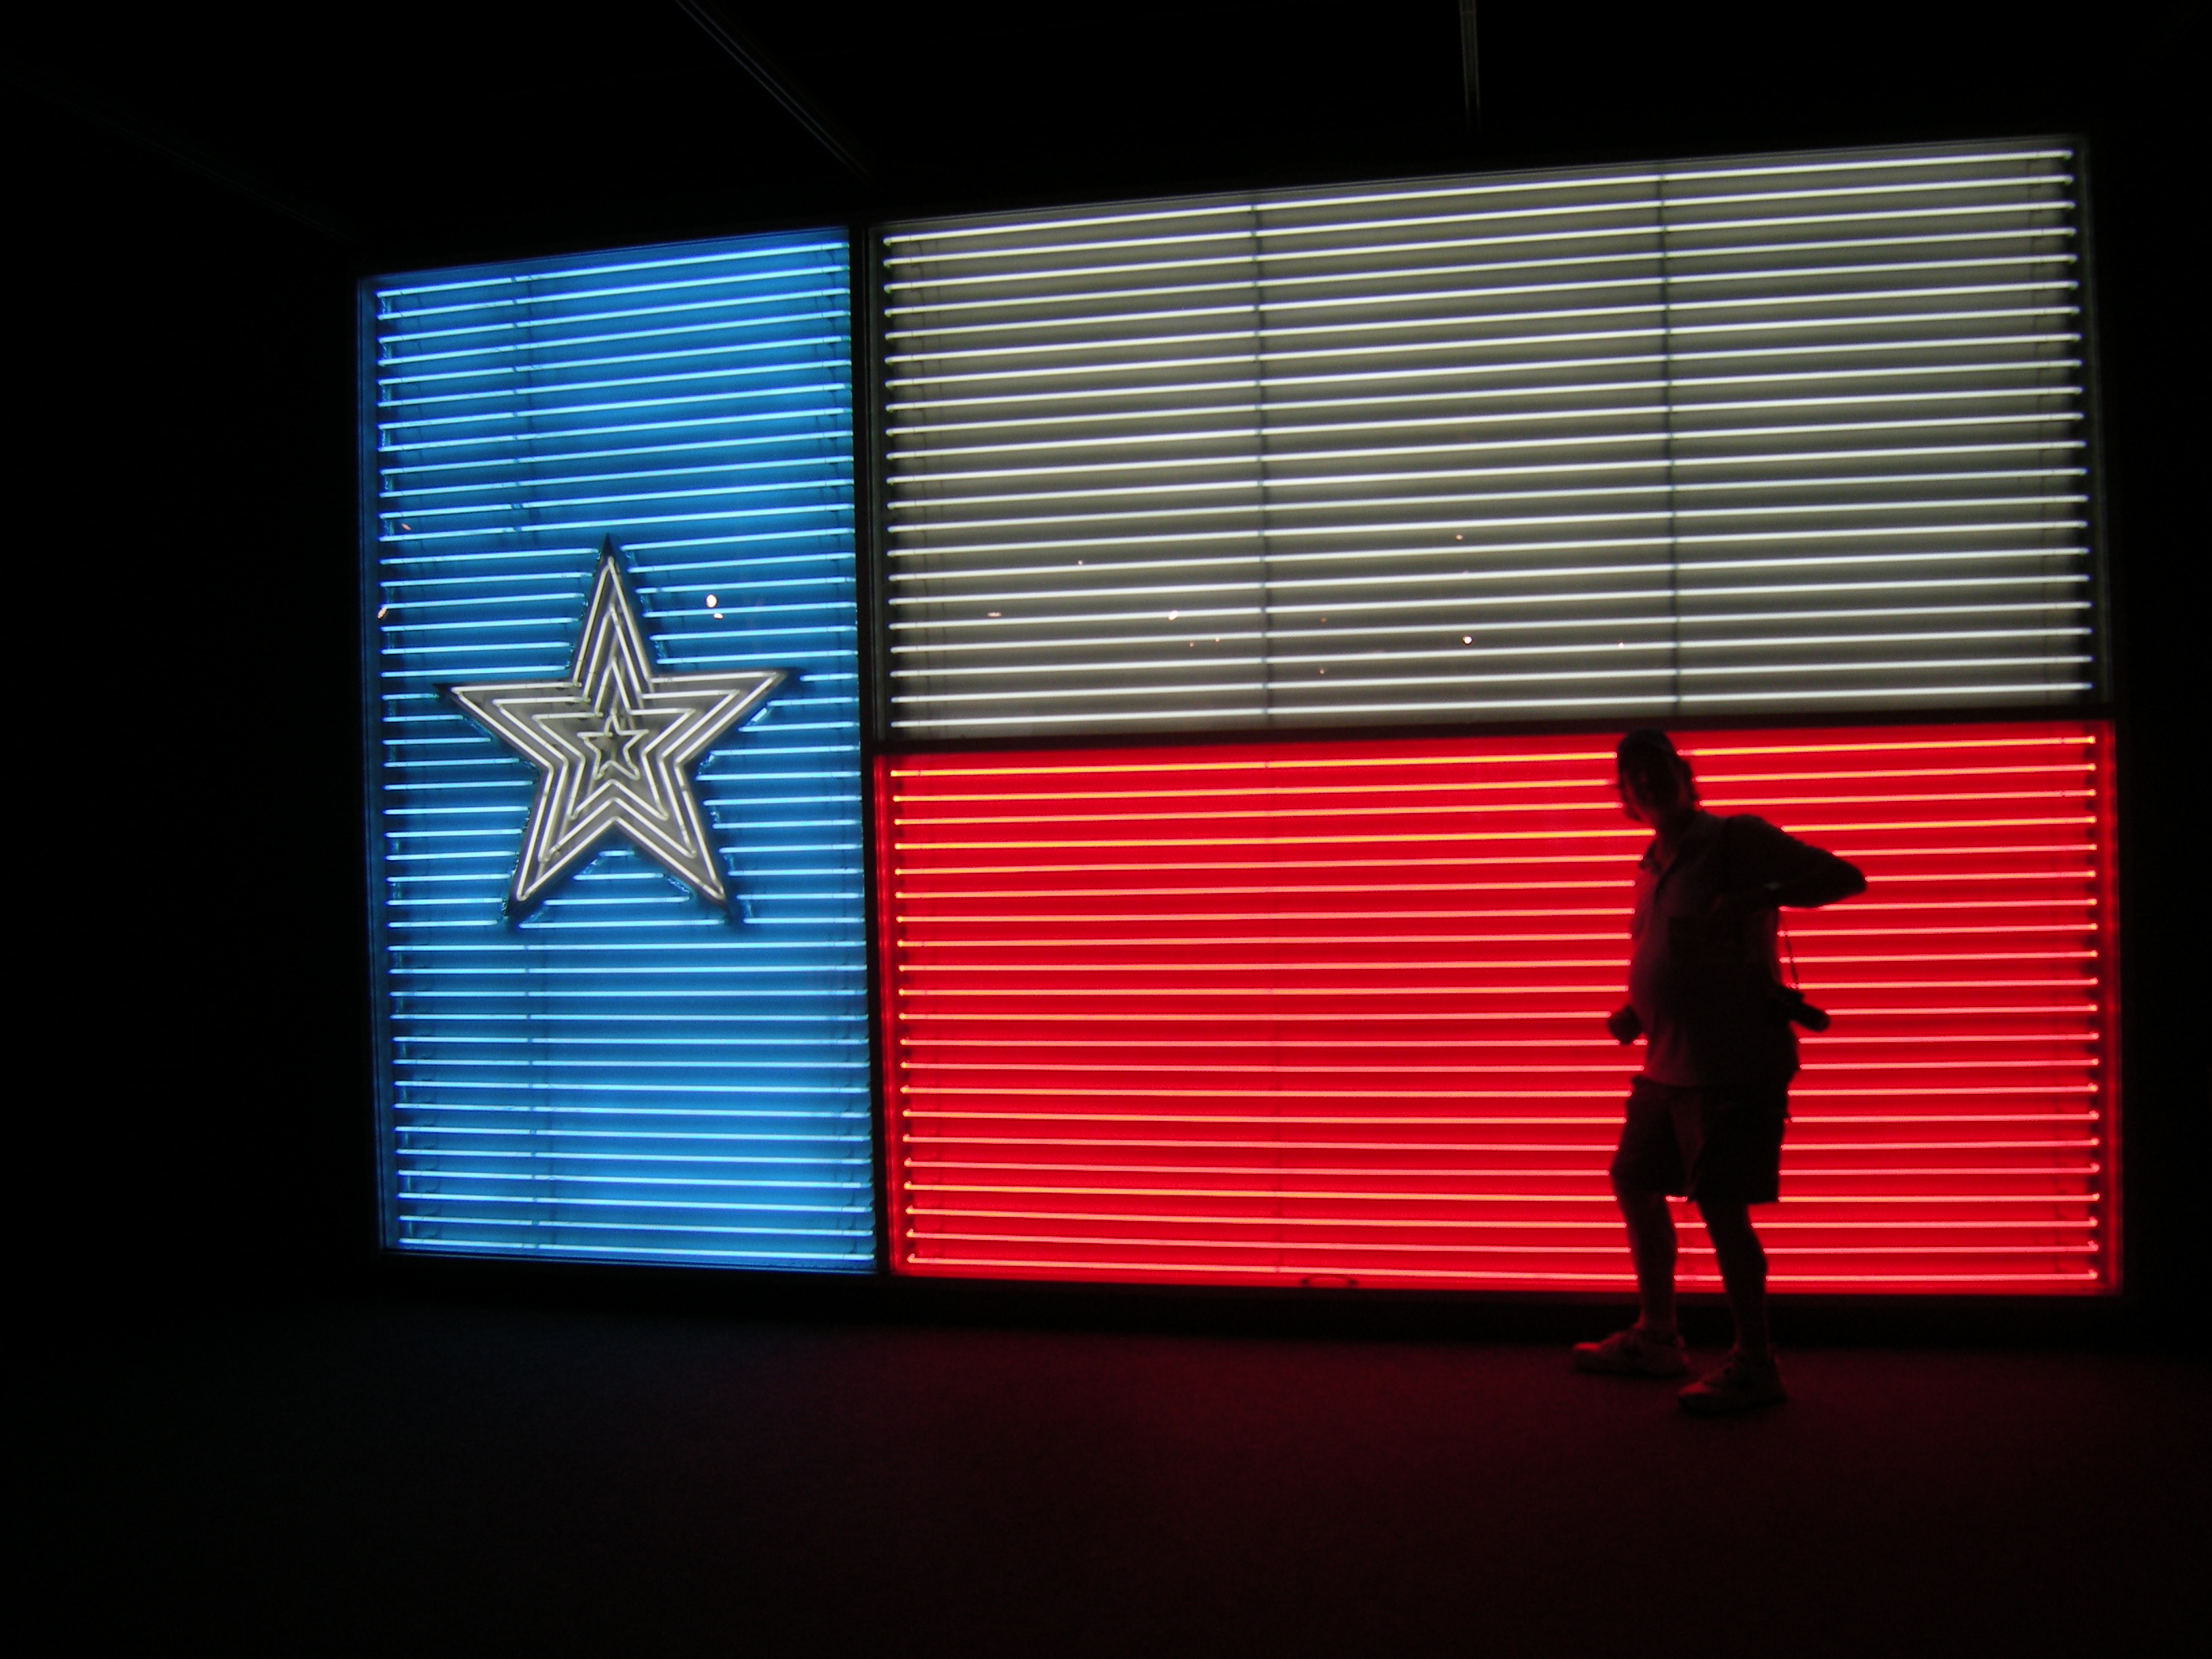 Dale's silhouette in front of a neon Texas flag!